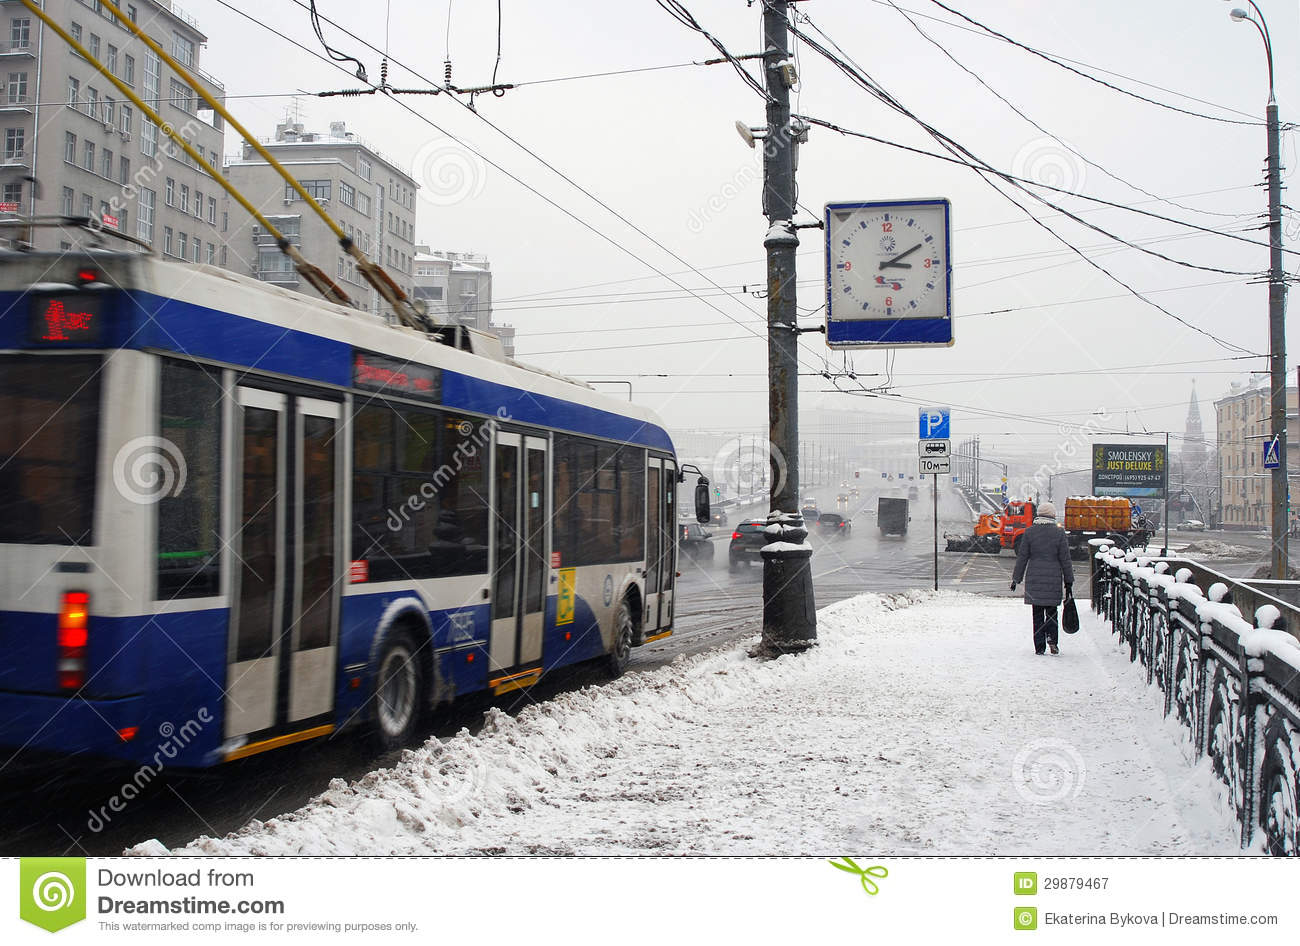 Snowstorm in Moscow